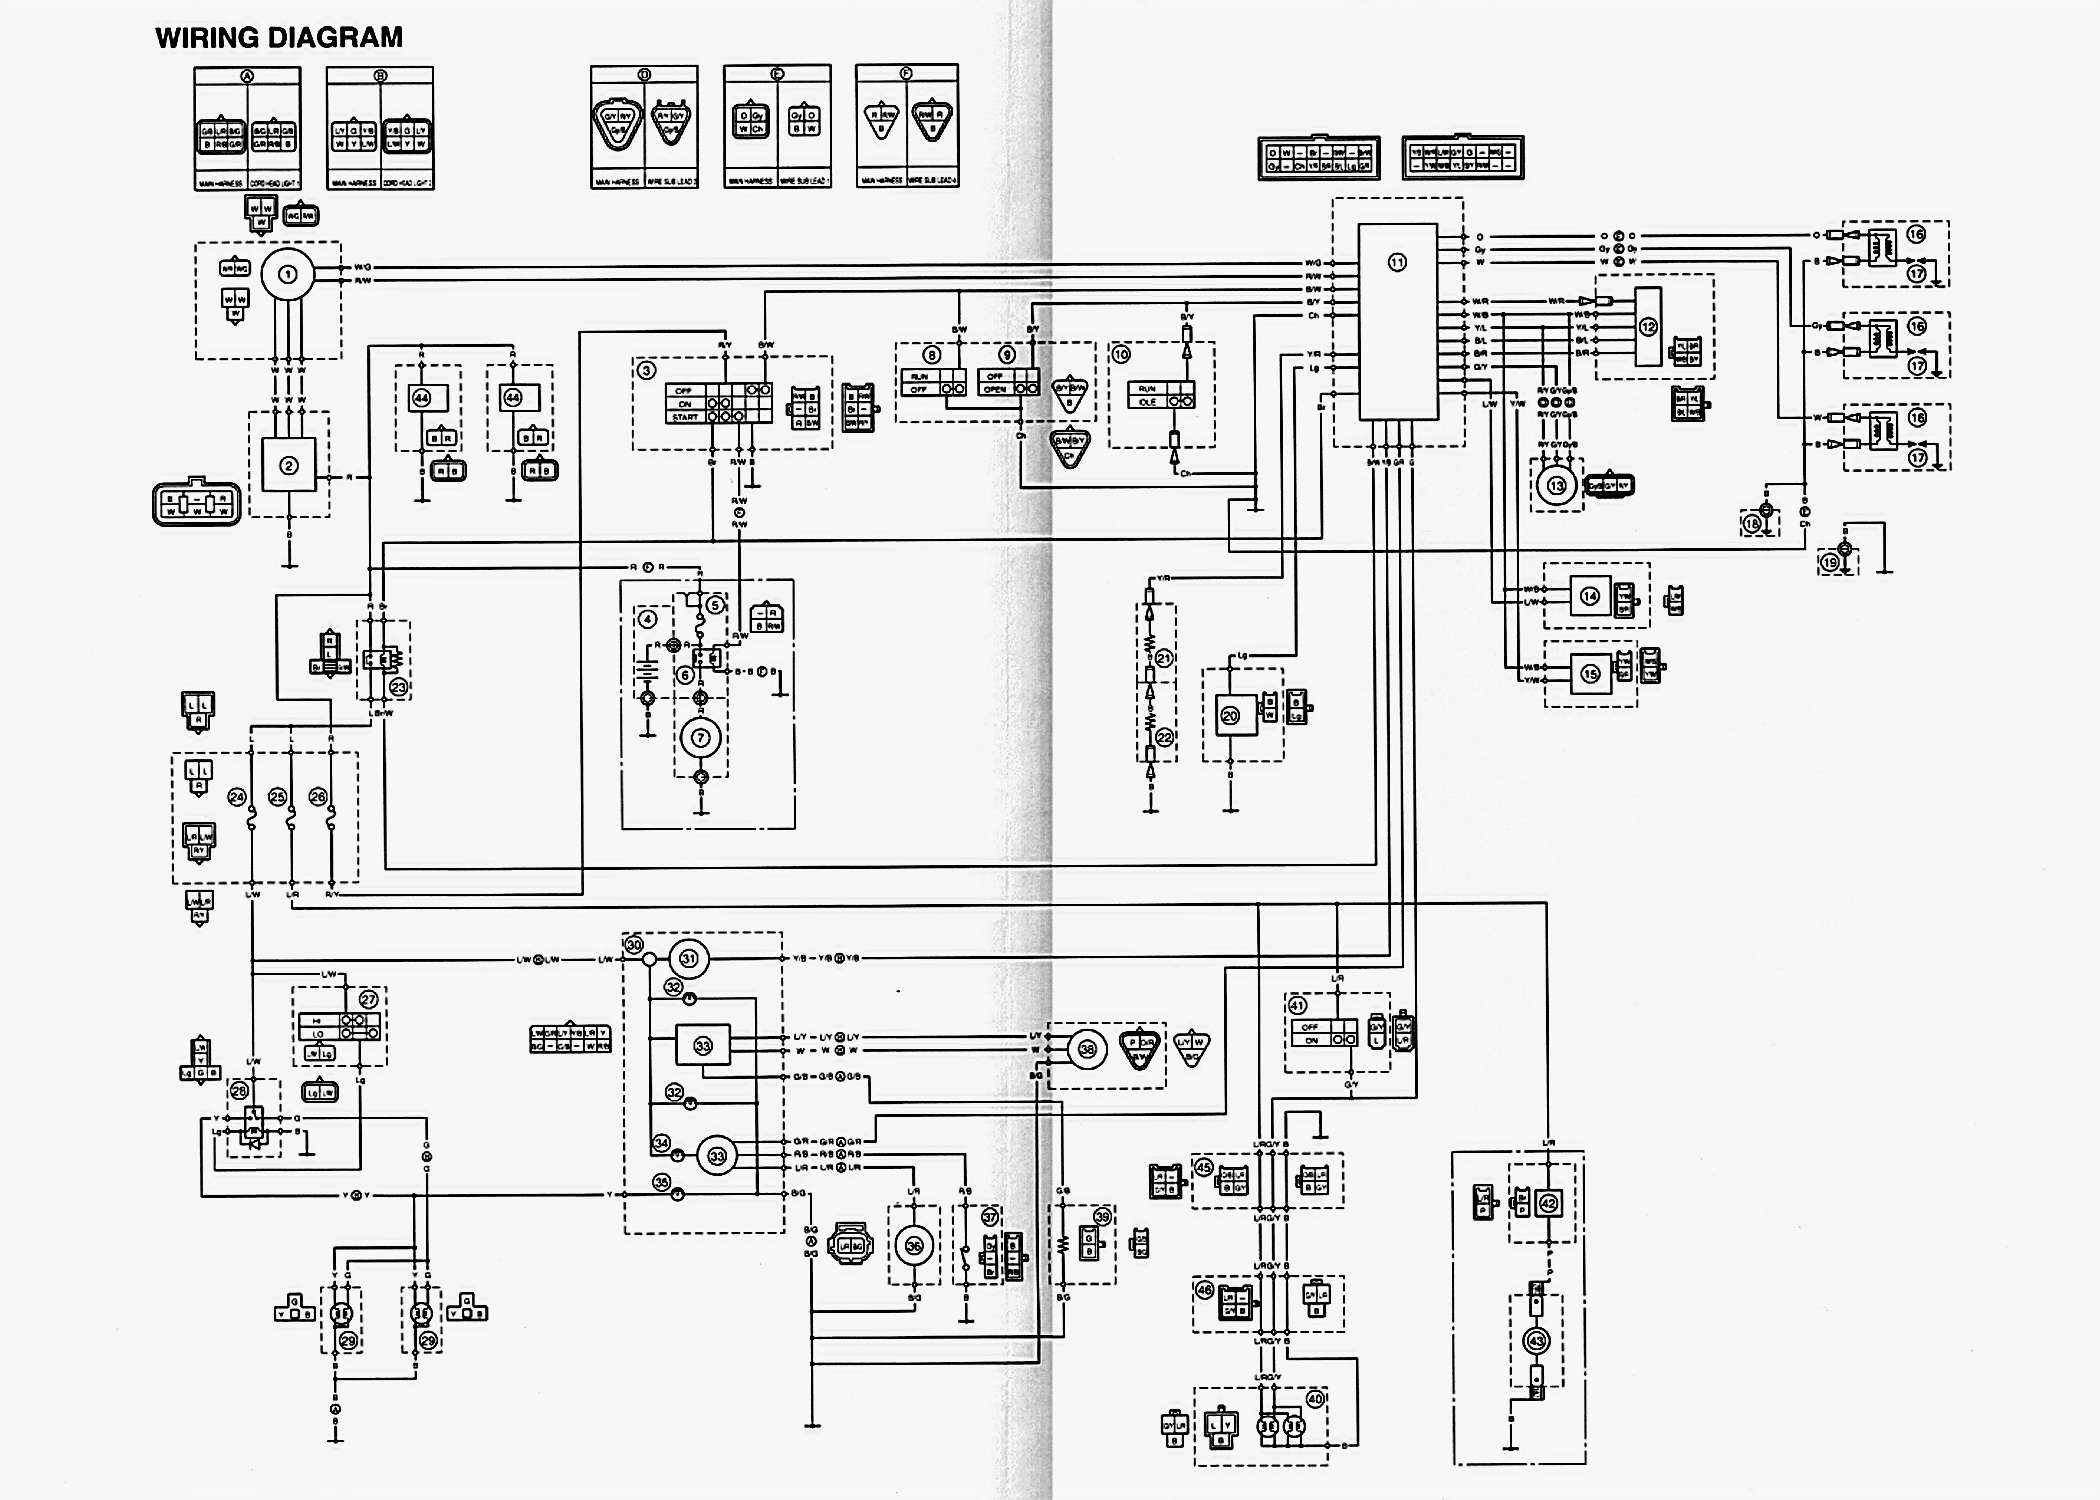 yamaha viper 700 wiring diagram  u2022 wiring diagram for free